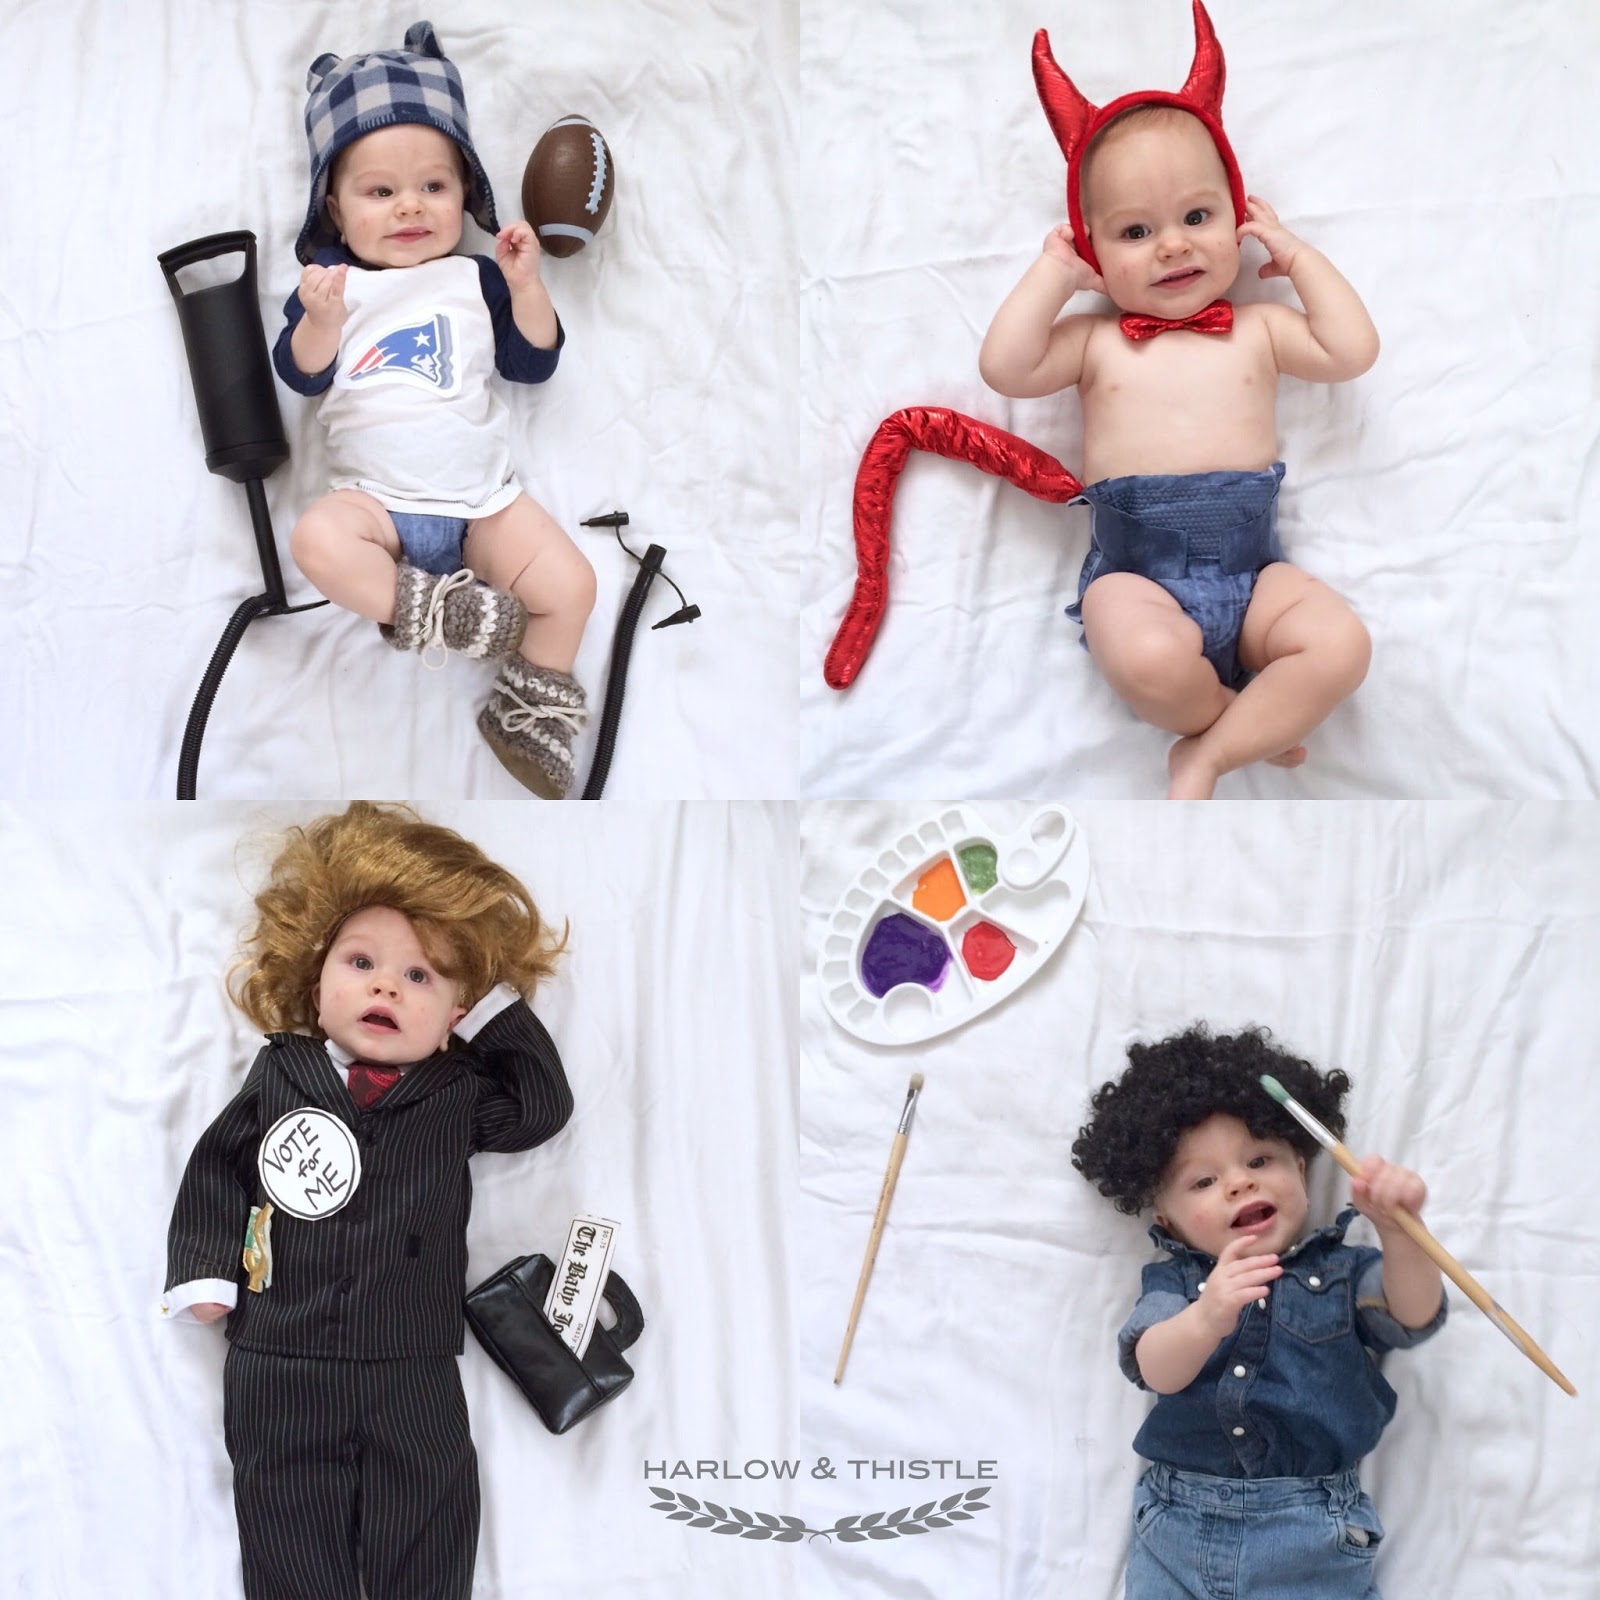 here are some cute diy baby halloween costume ideas for 2015 tom brady devil donald trump although this ended up looking more like hilary and bob ross - Diy Halloween Baby Costumes